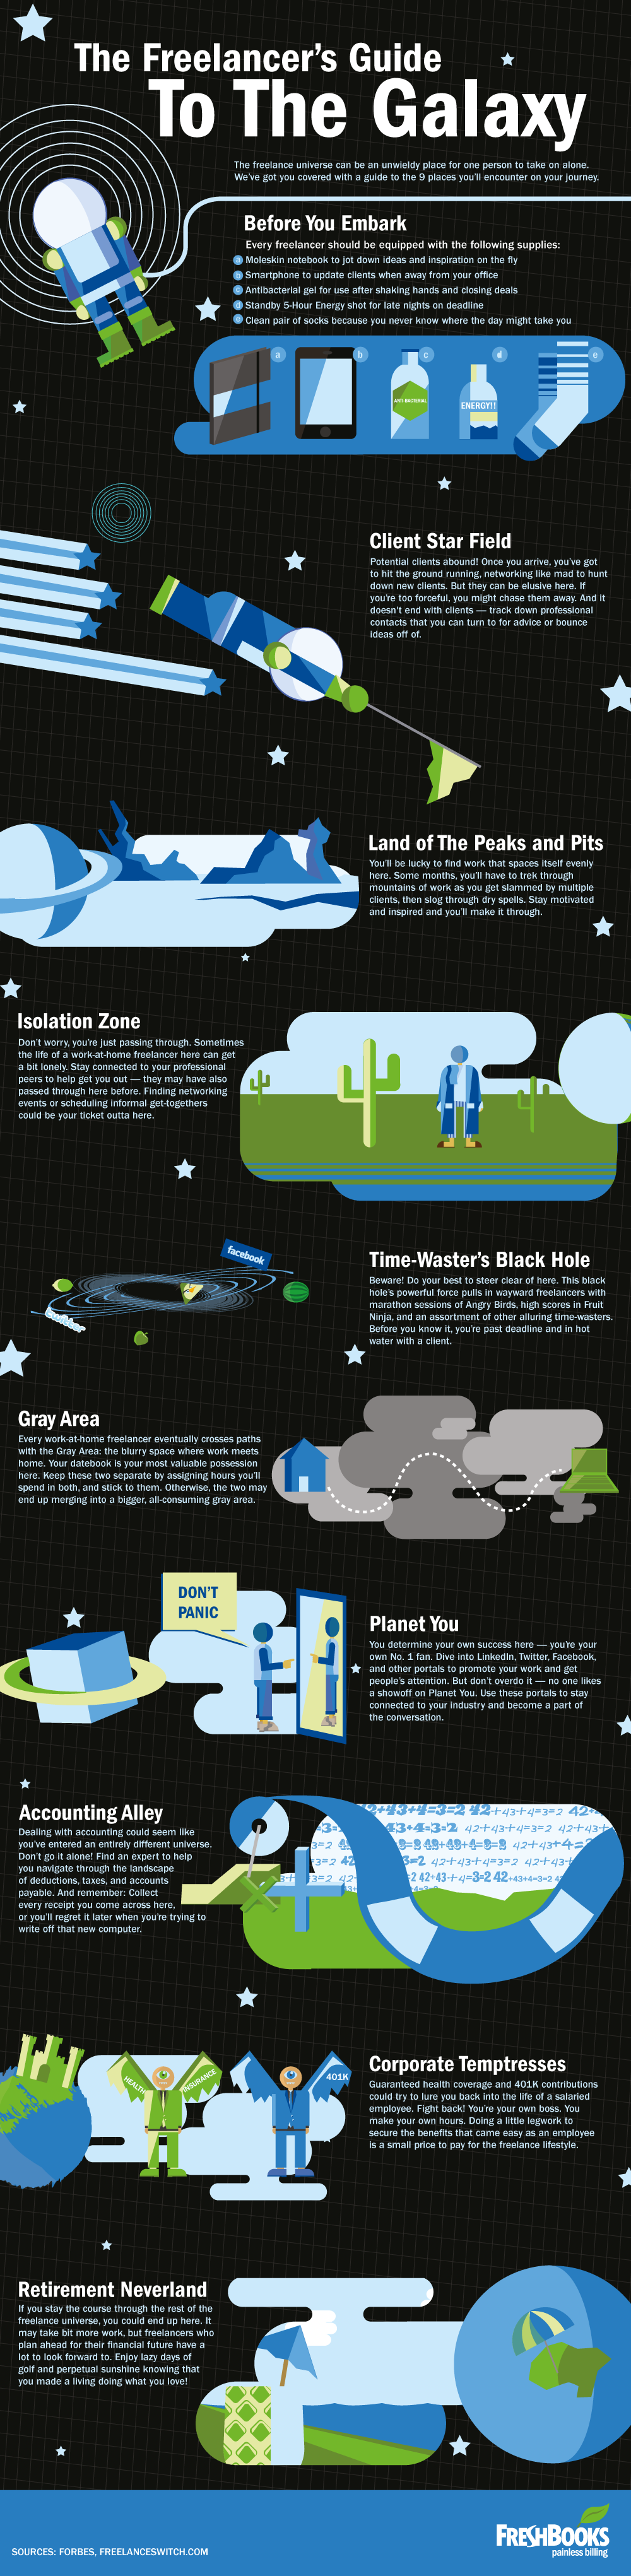 freelancers-guide-to-the-galaxy-infographic